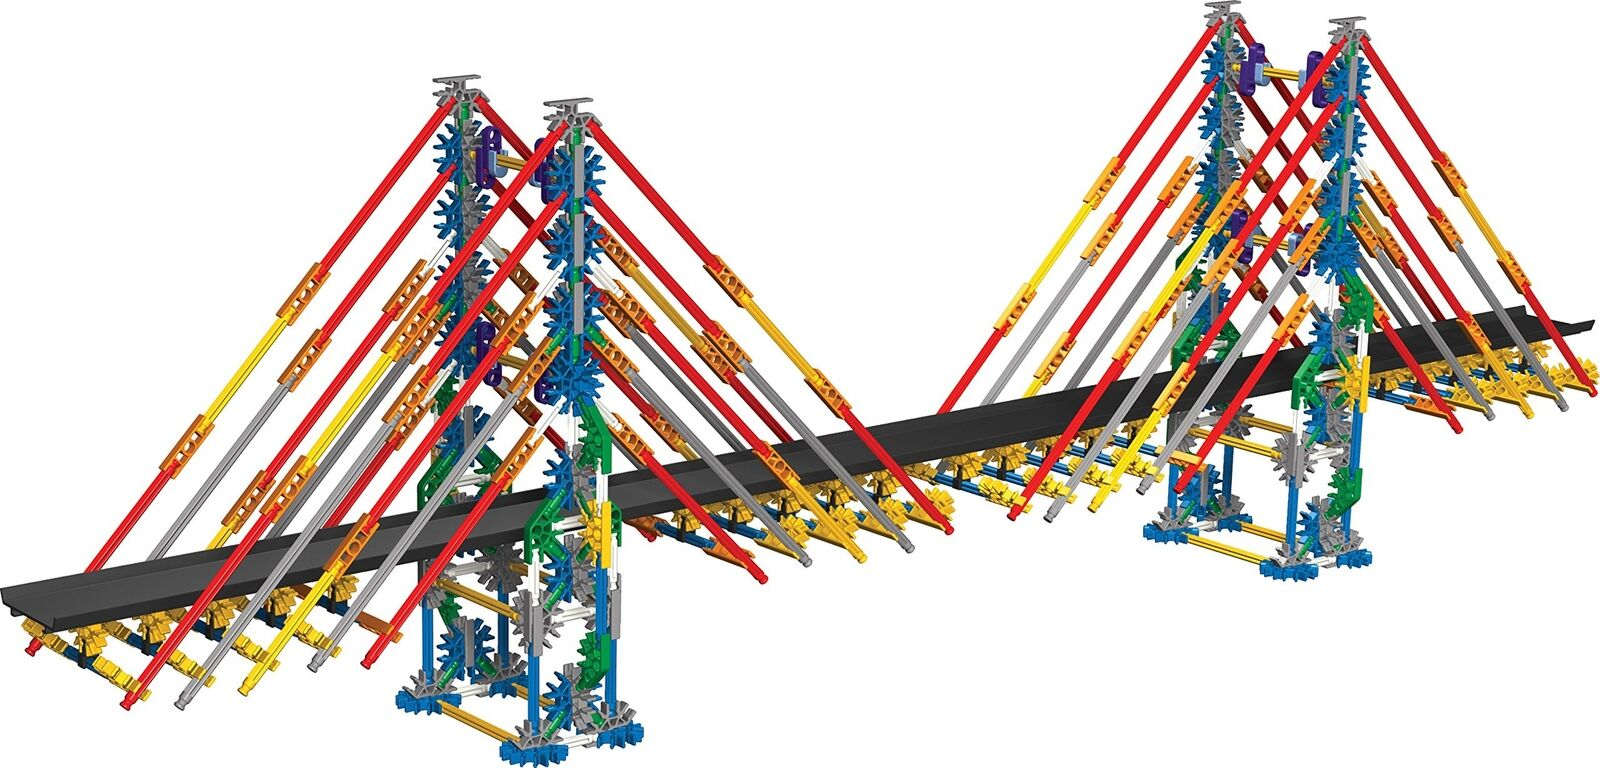 K'NEX K'NEX K'NEX Education Real Bridge Building Set for Ages 10+ Construction Educationa... 3d9aca